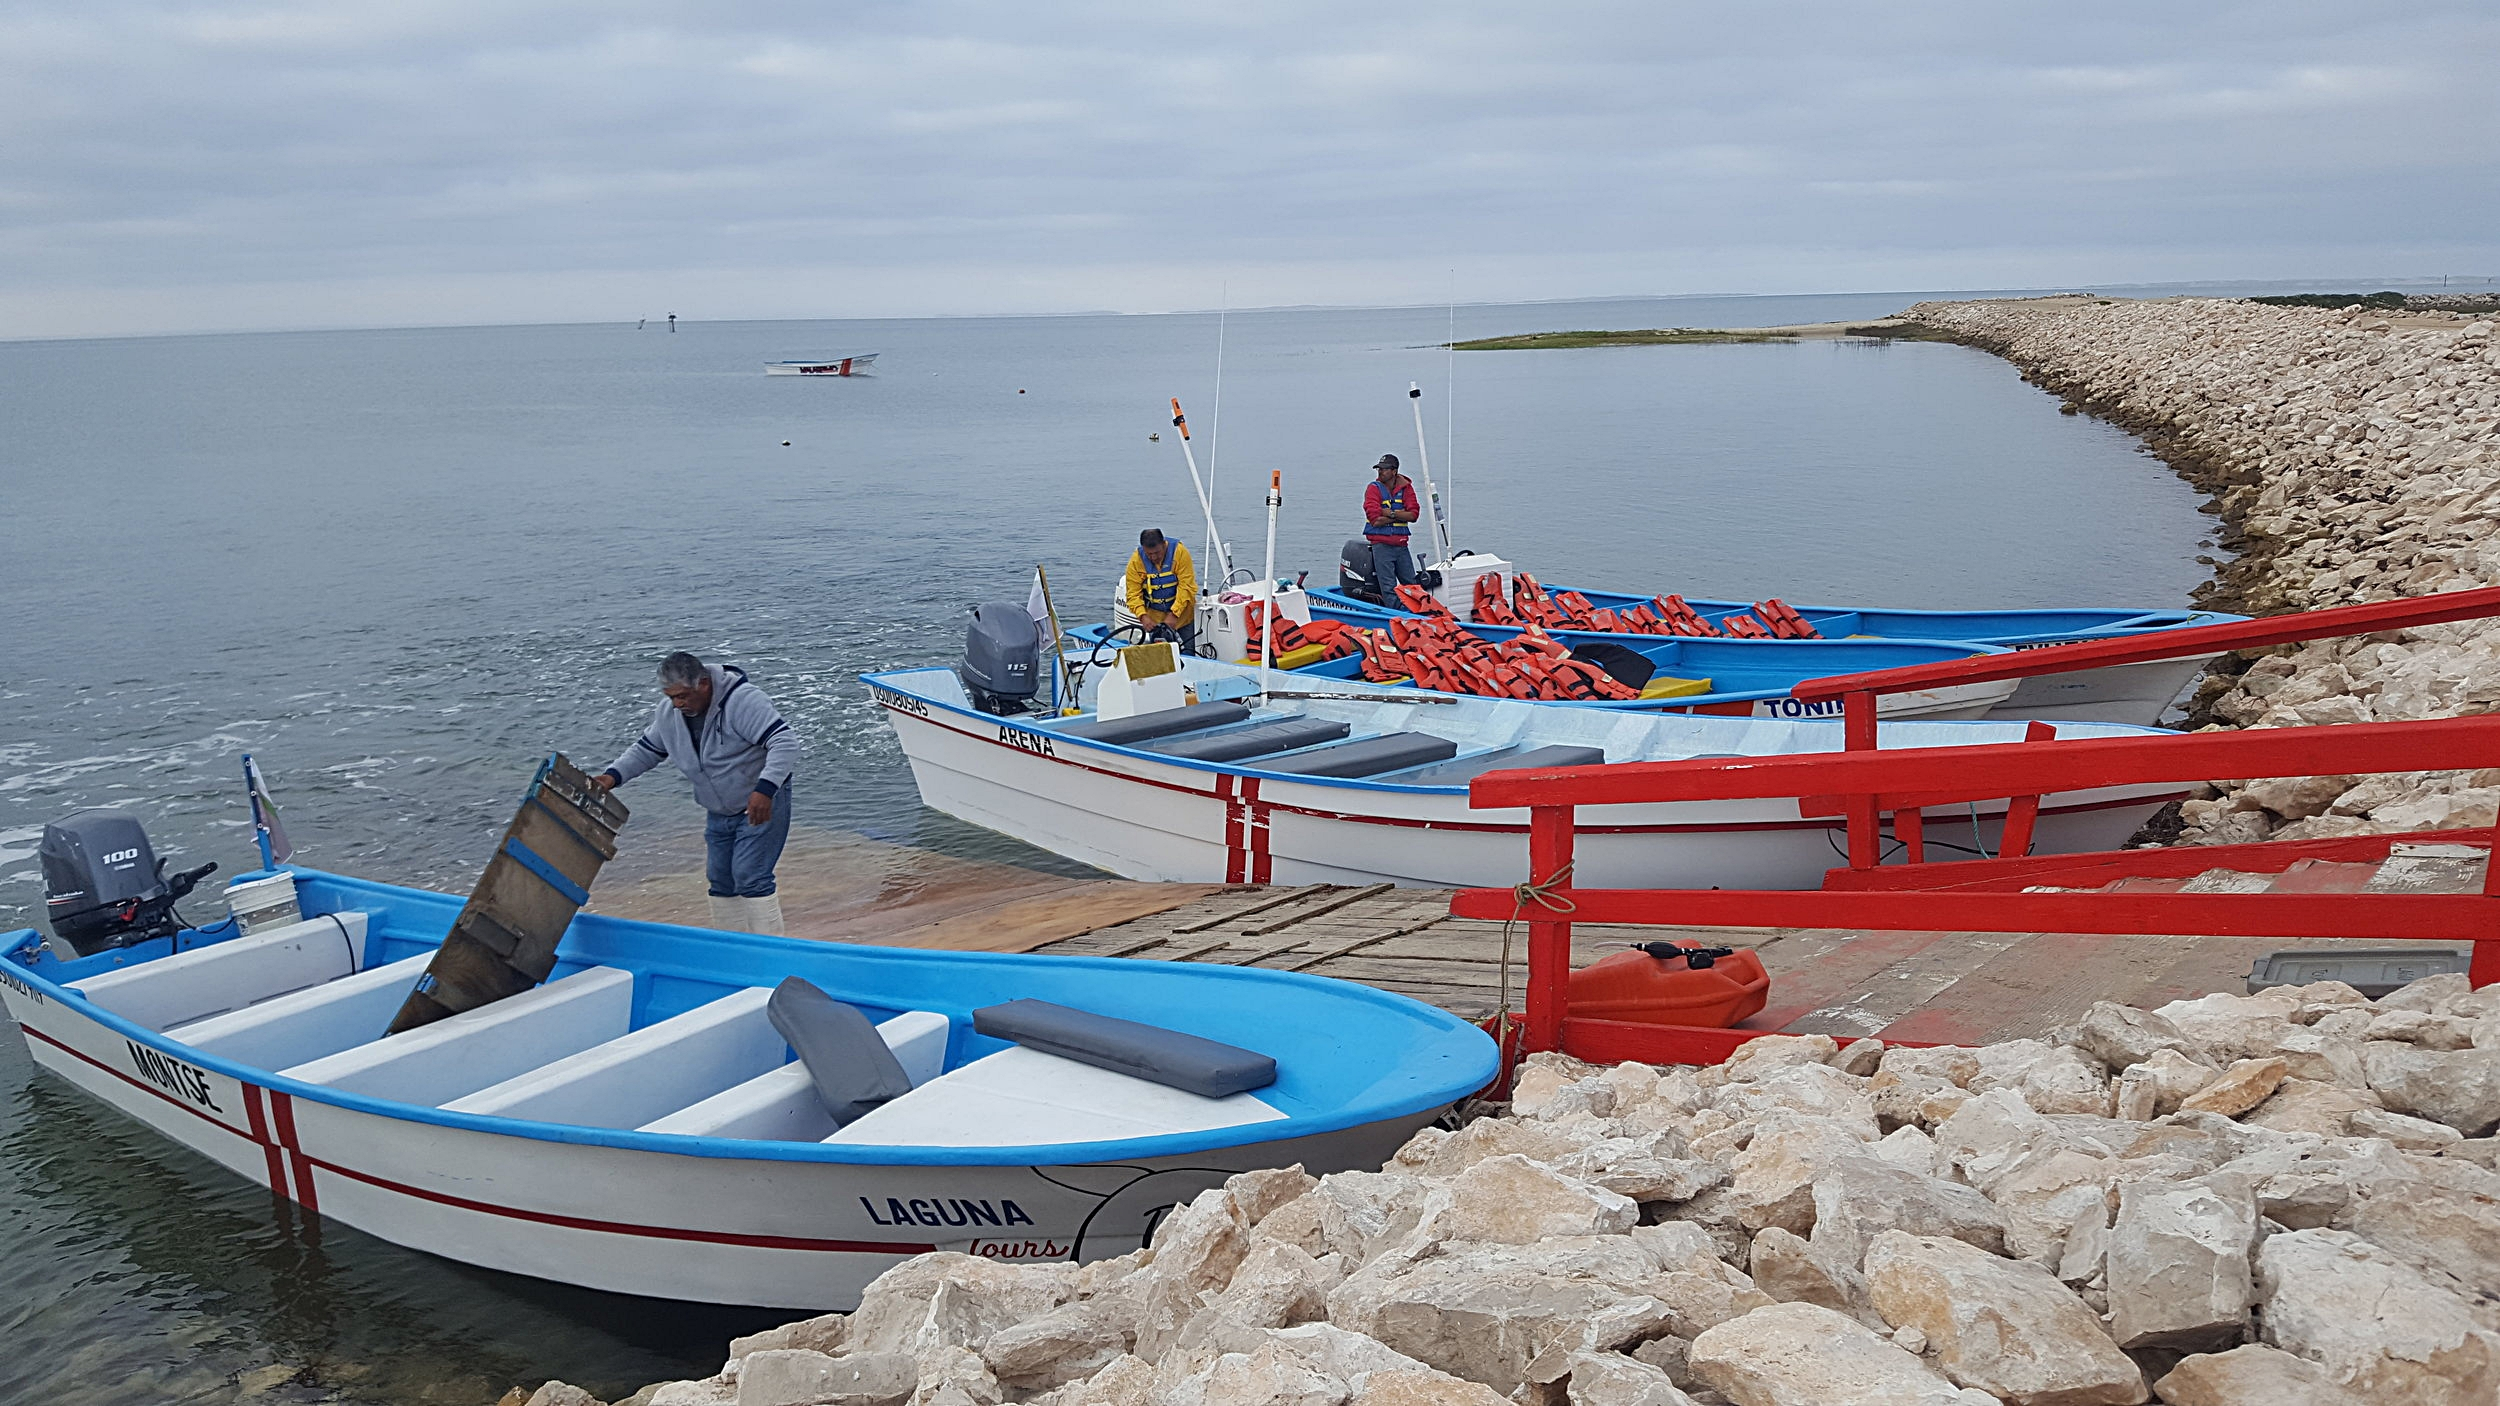 The boats are ready to go!